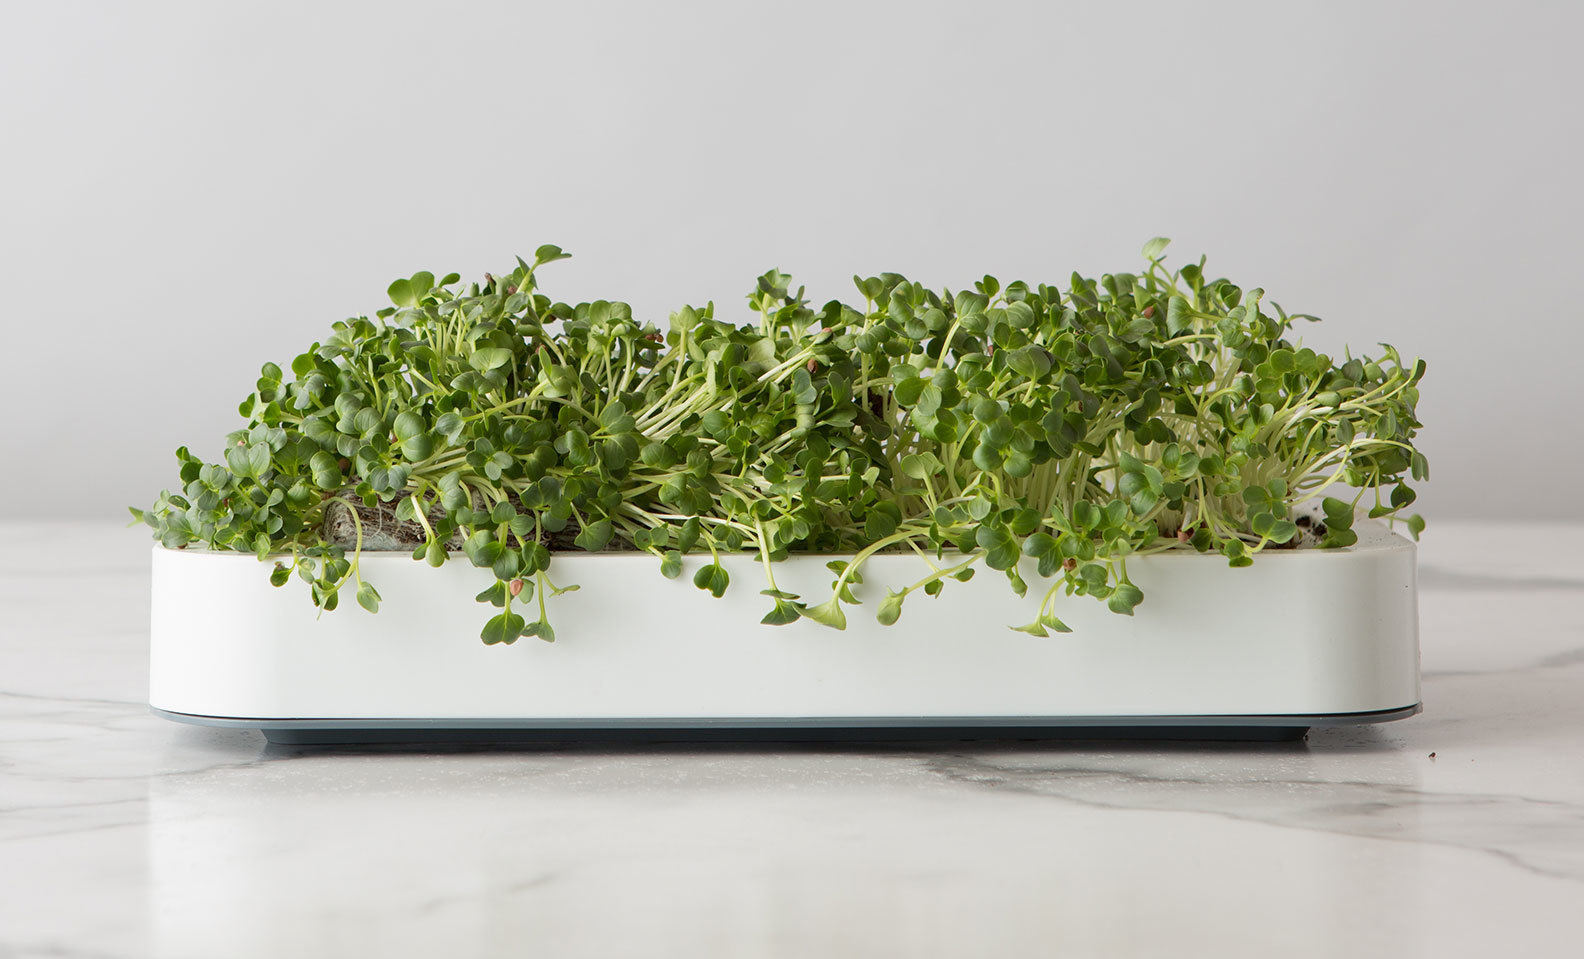 Chef'n Microgreens Growing Kit